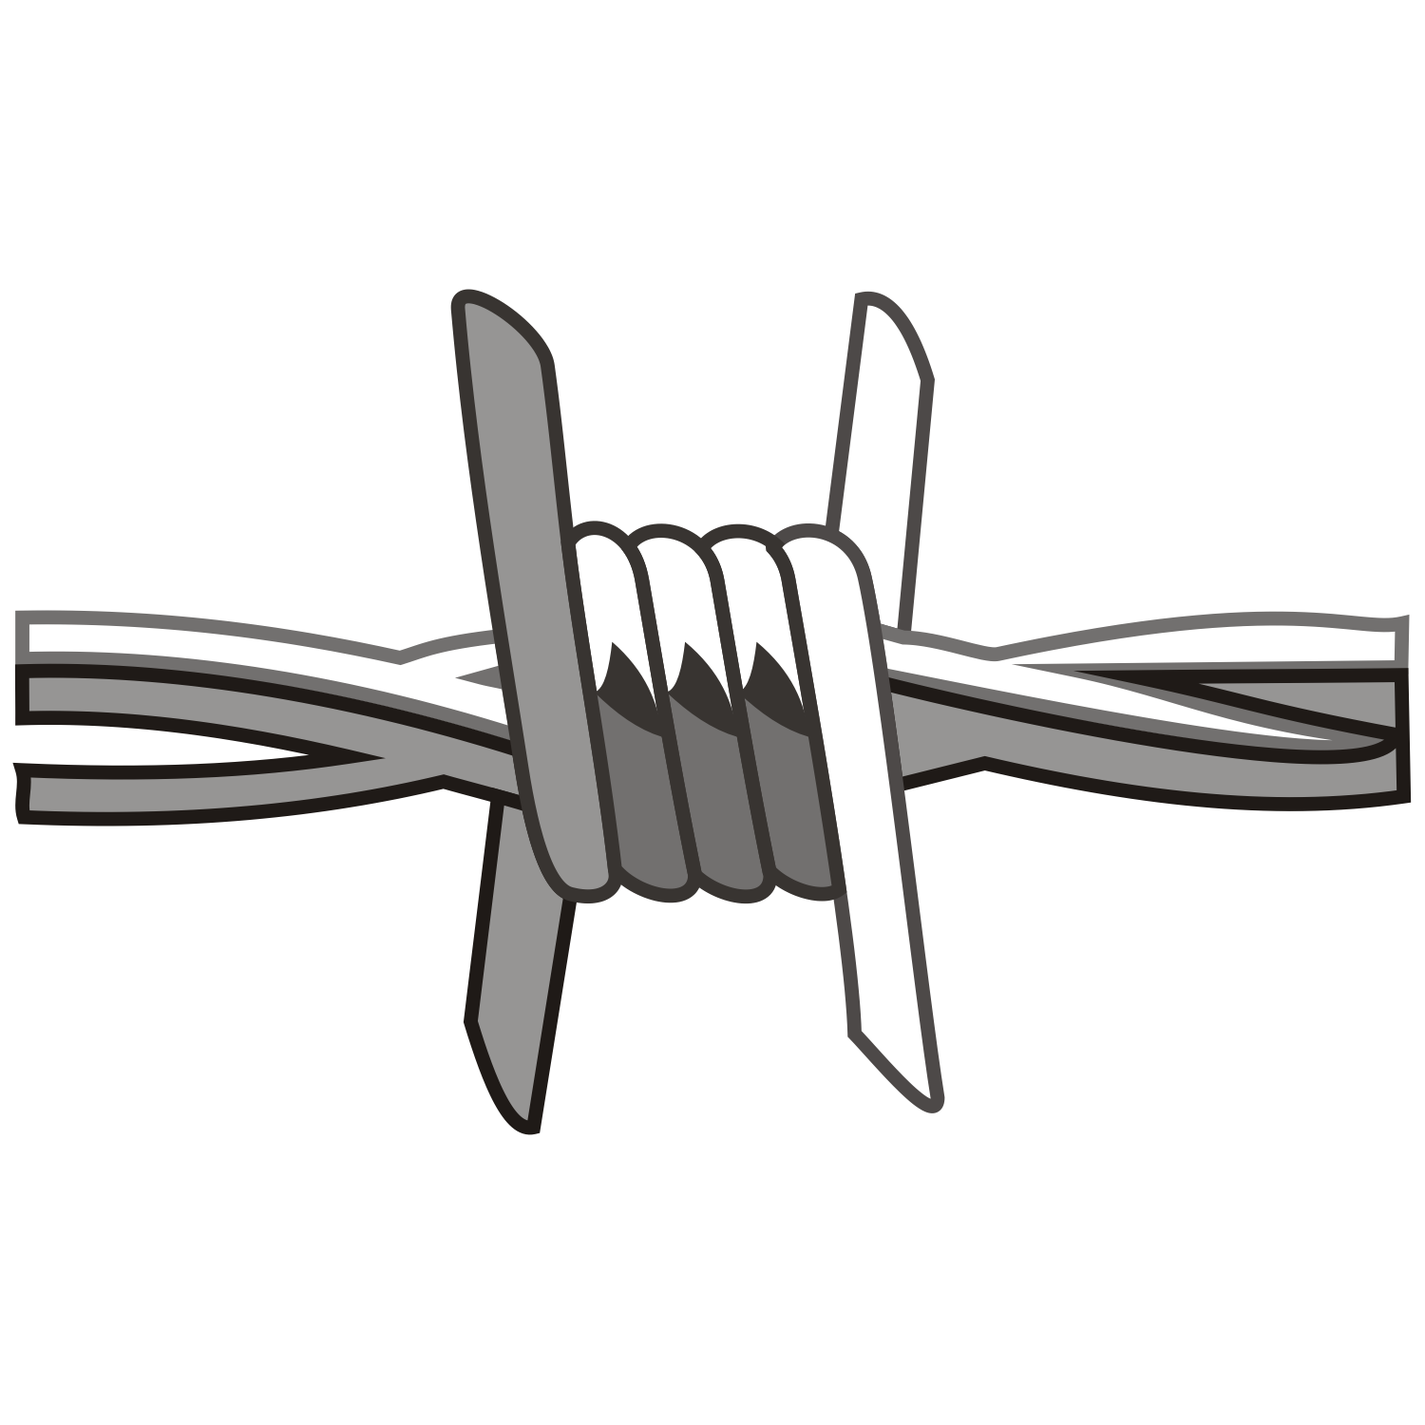 Free Barb Wire Vector.